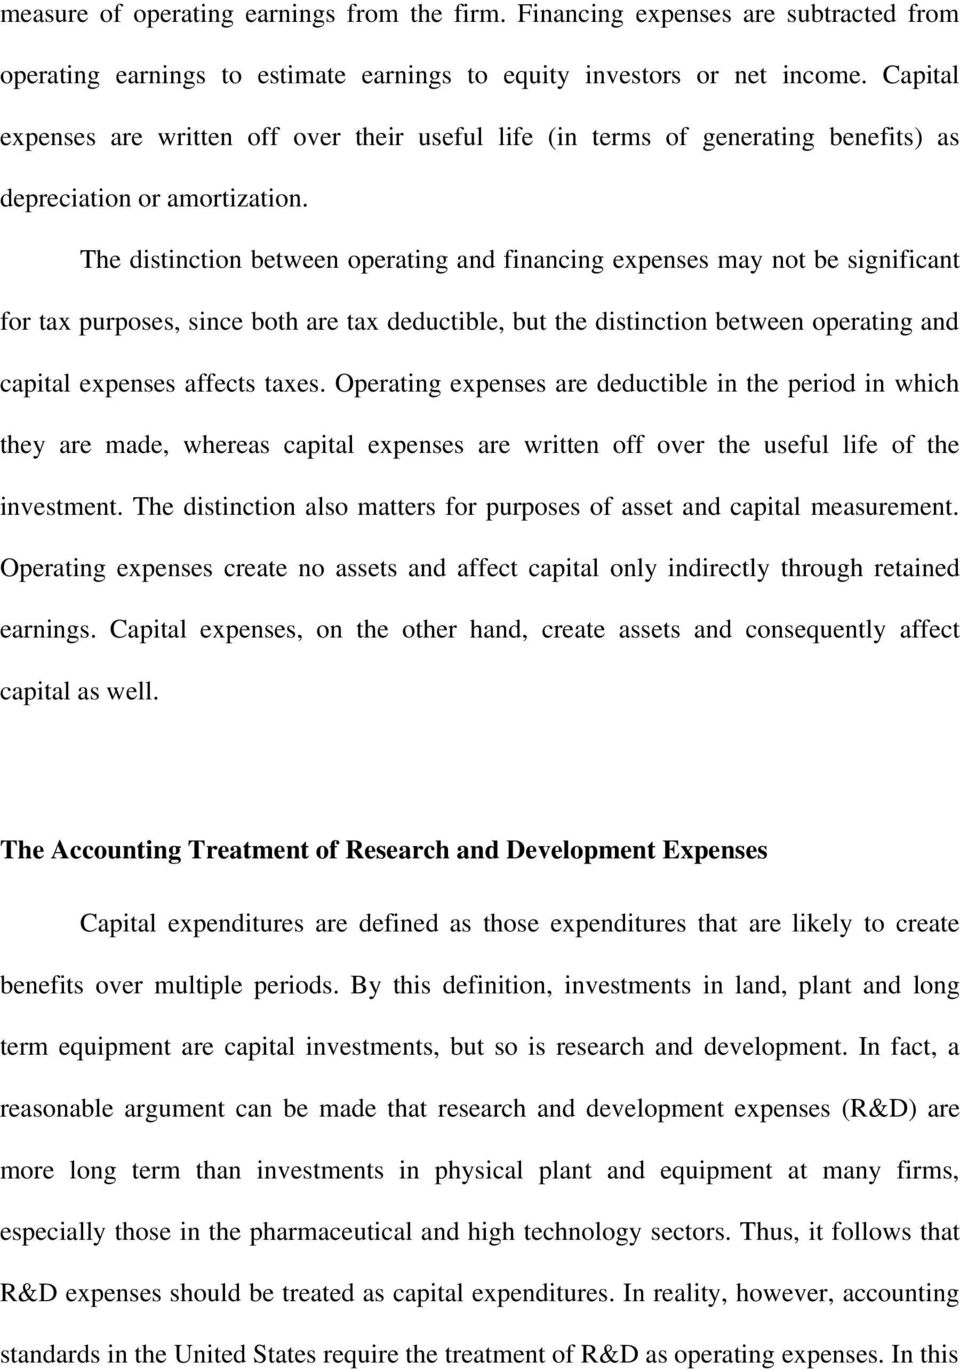 The distinction between operating and financing expenses may not be significant for tax purposes, since both are tax deductible, but the distinction between operating and capital expenses affects